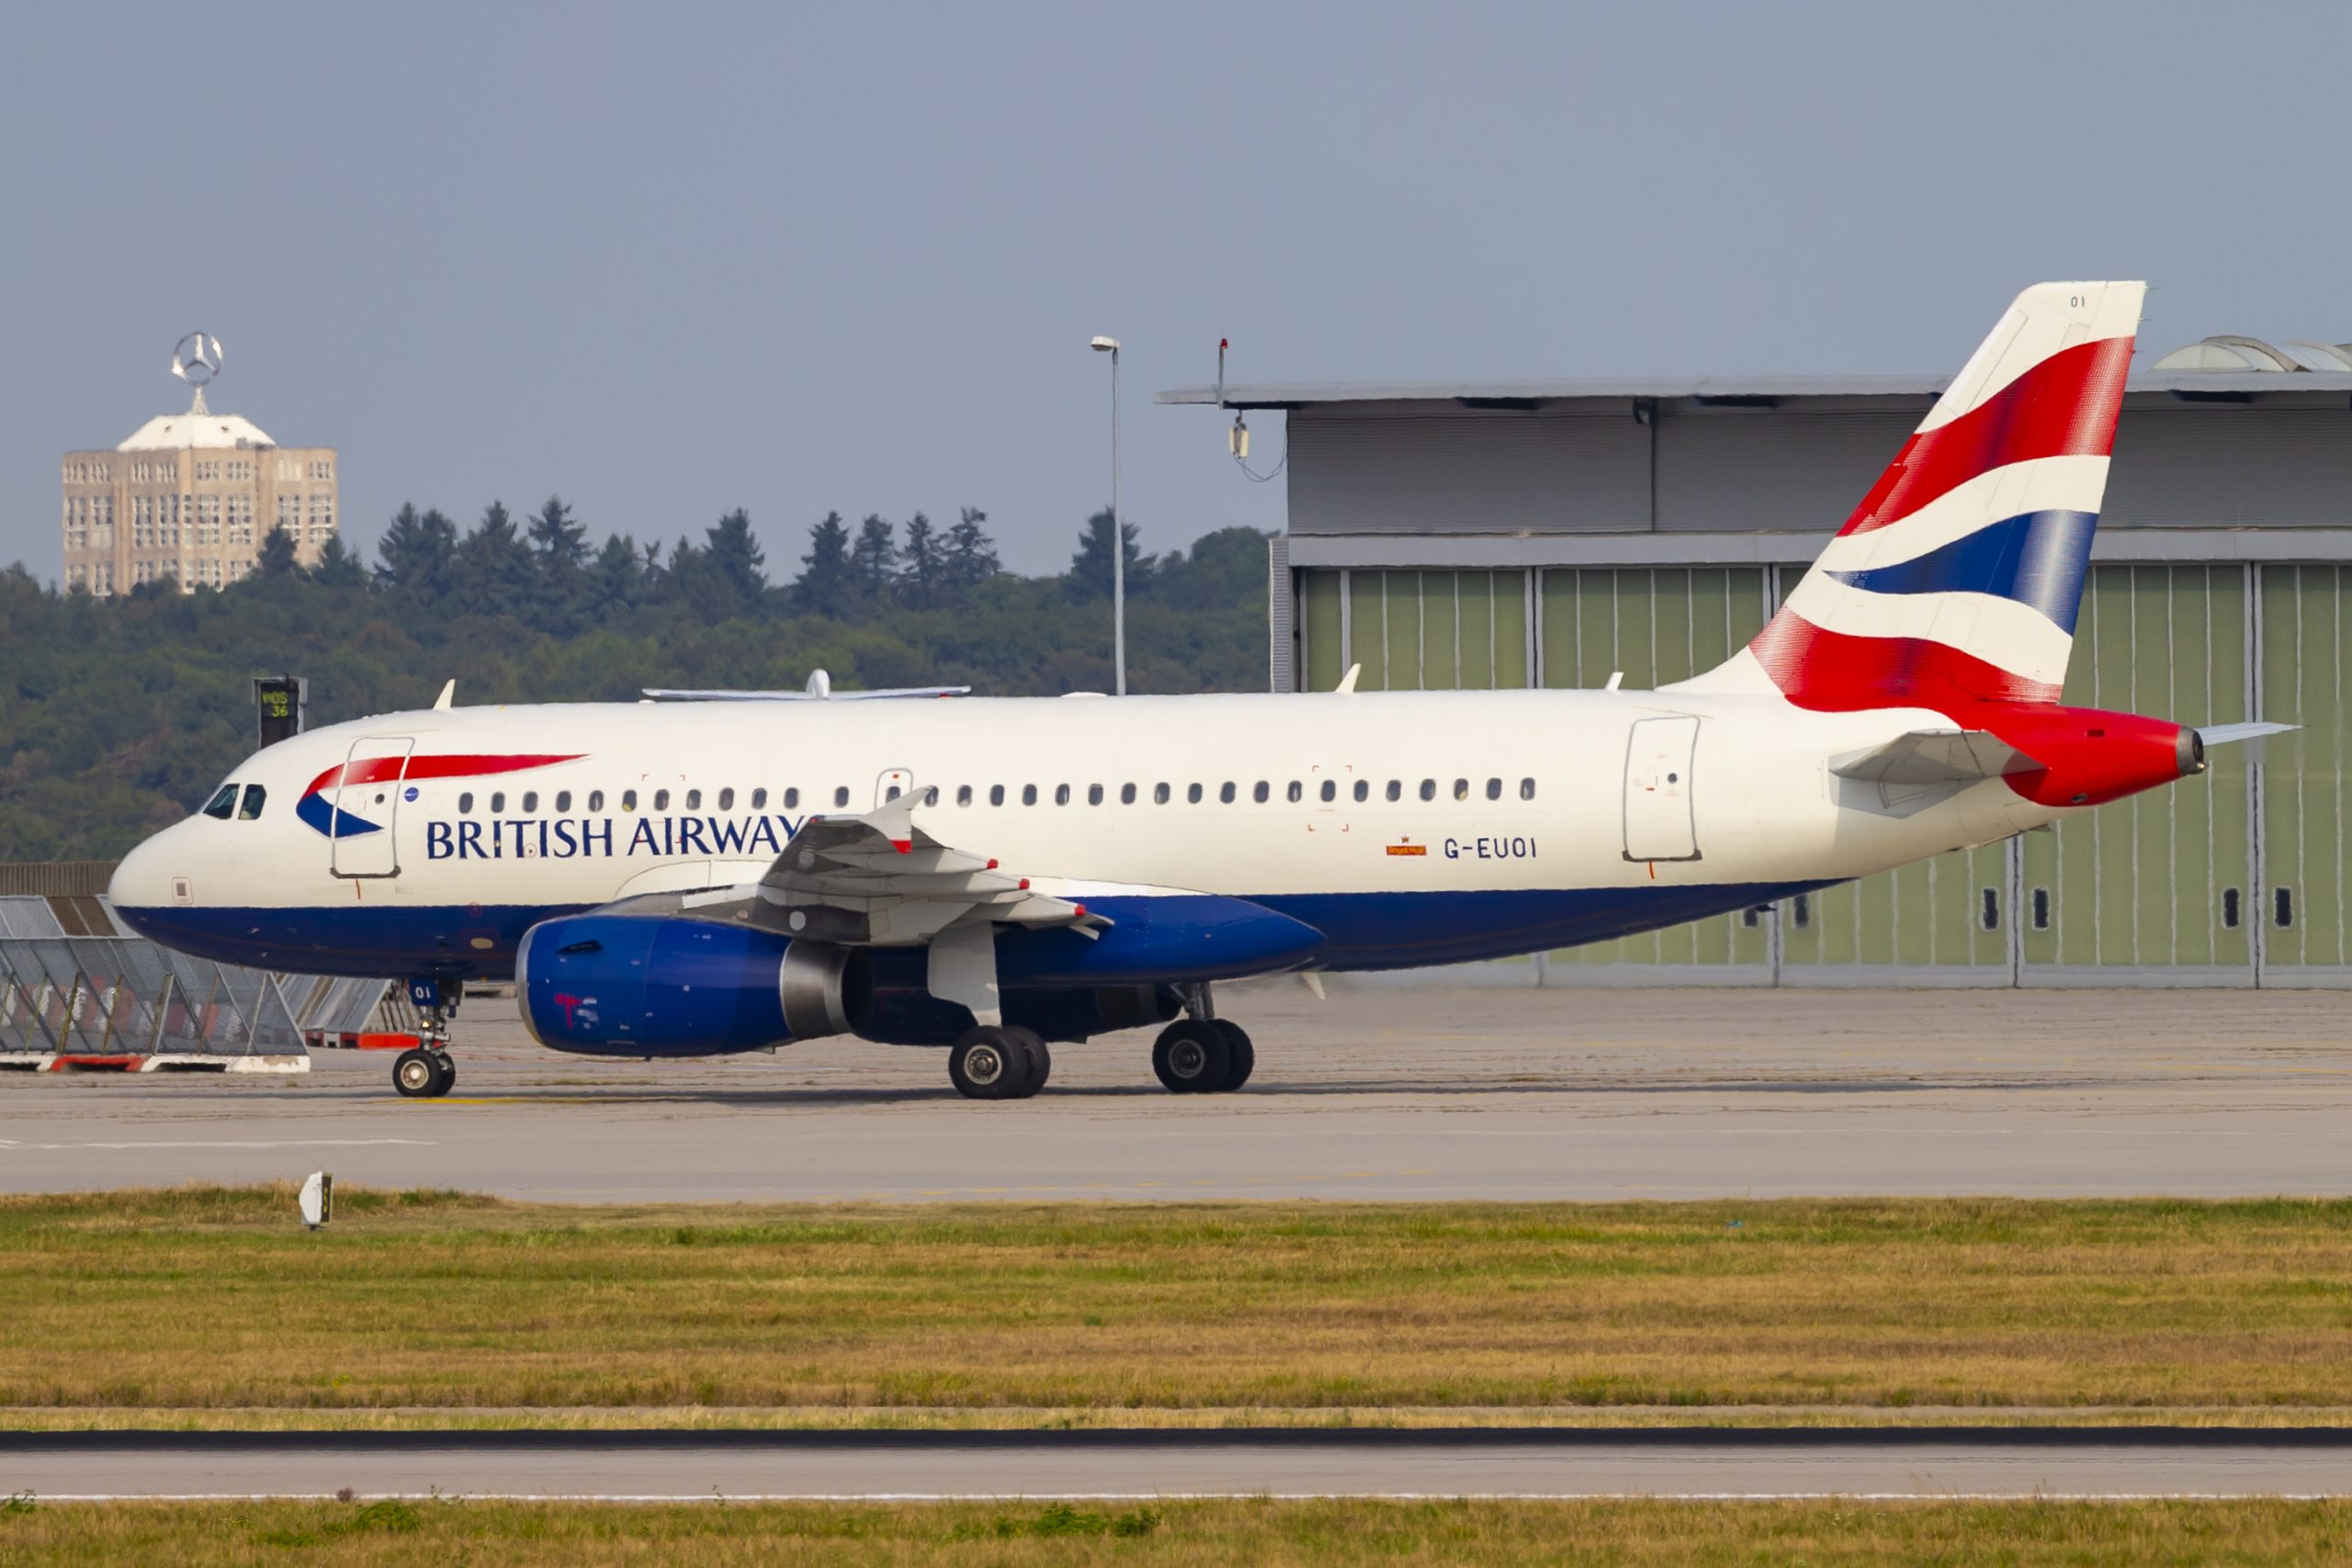 En Airbus A319-100 fra British Airways. Foto: © Thorbjørn Brunander Sund, Danish Aviation Photo